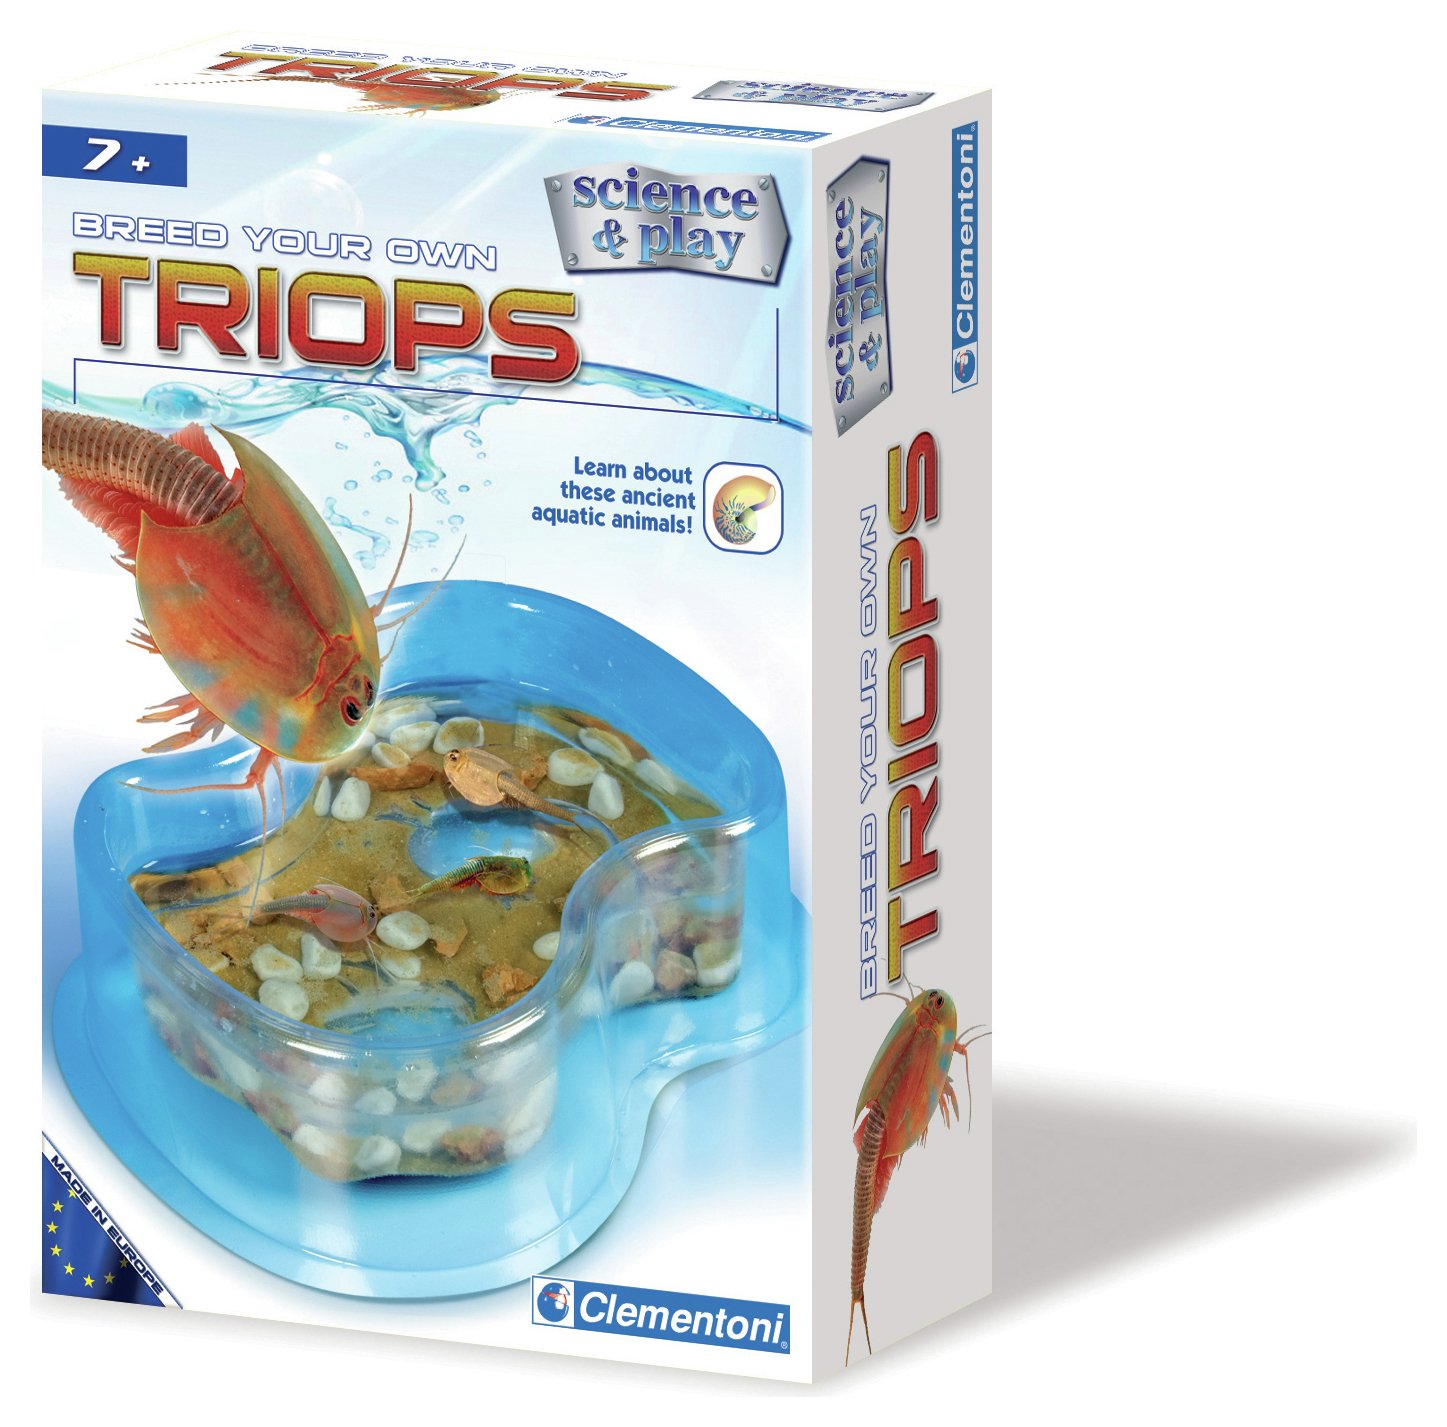 Image of Clementoni Breed Your Own Triops Kit.